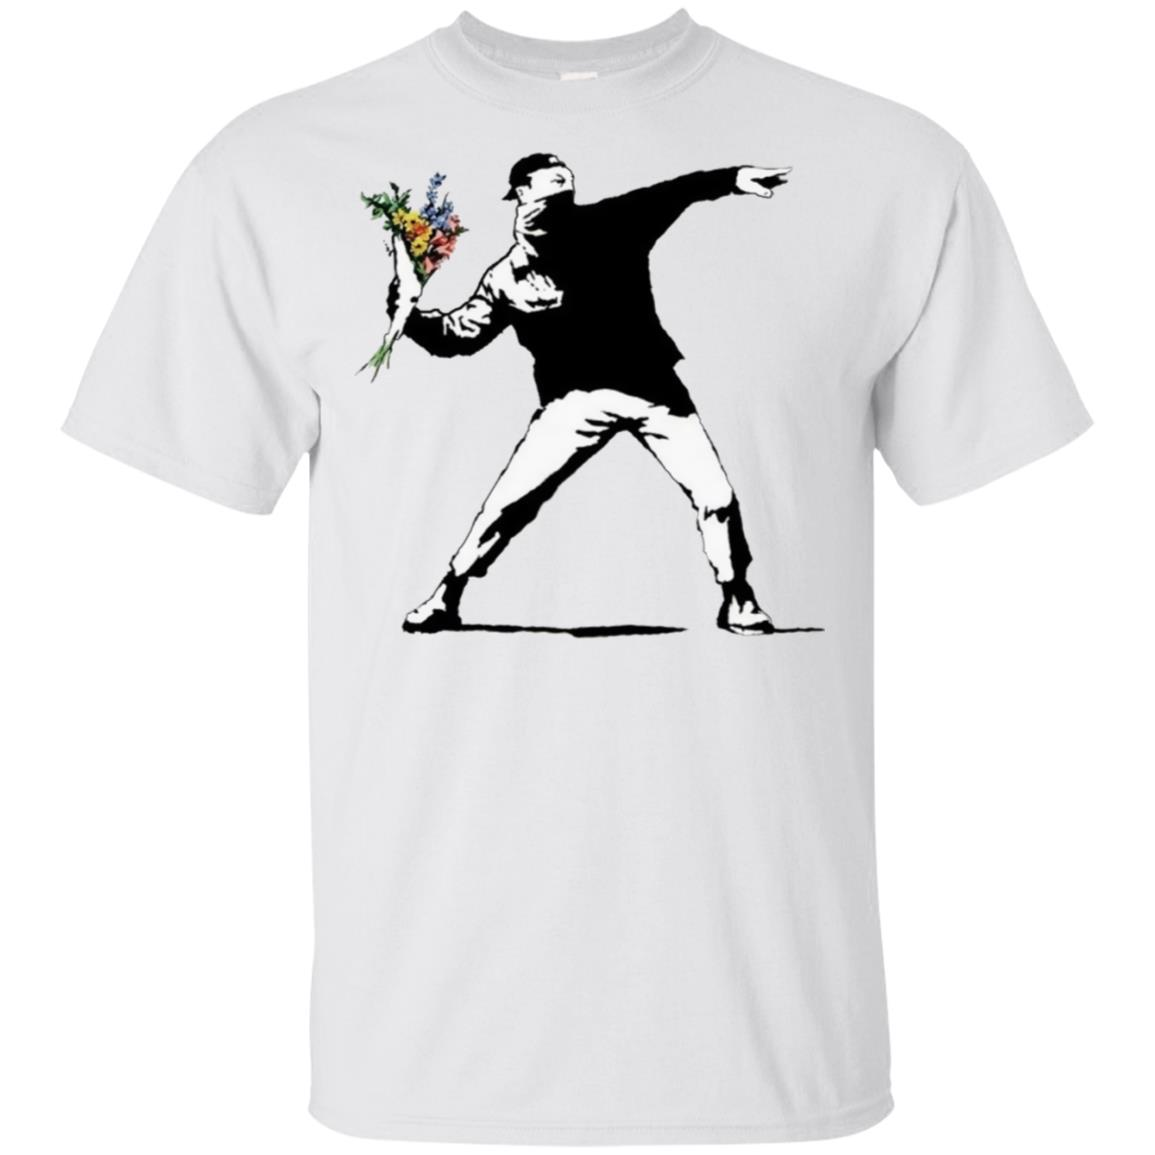 Flower Thrower Graffiti Street Artist Unisex Short Sleeve